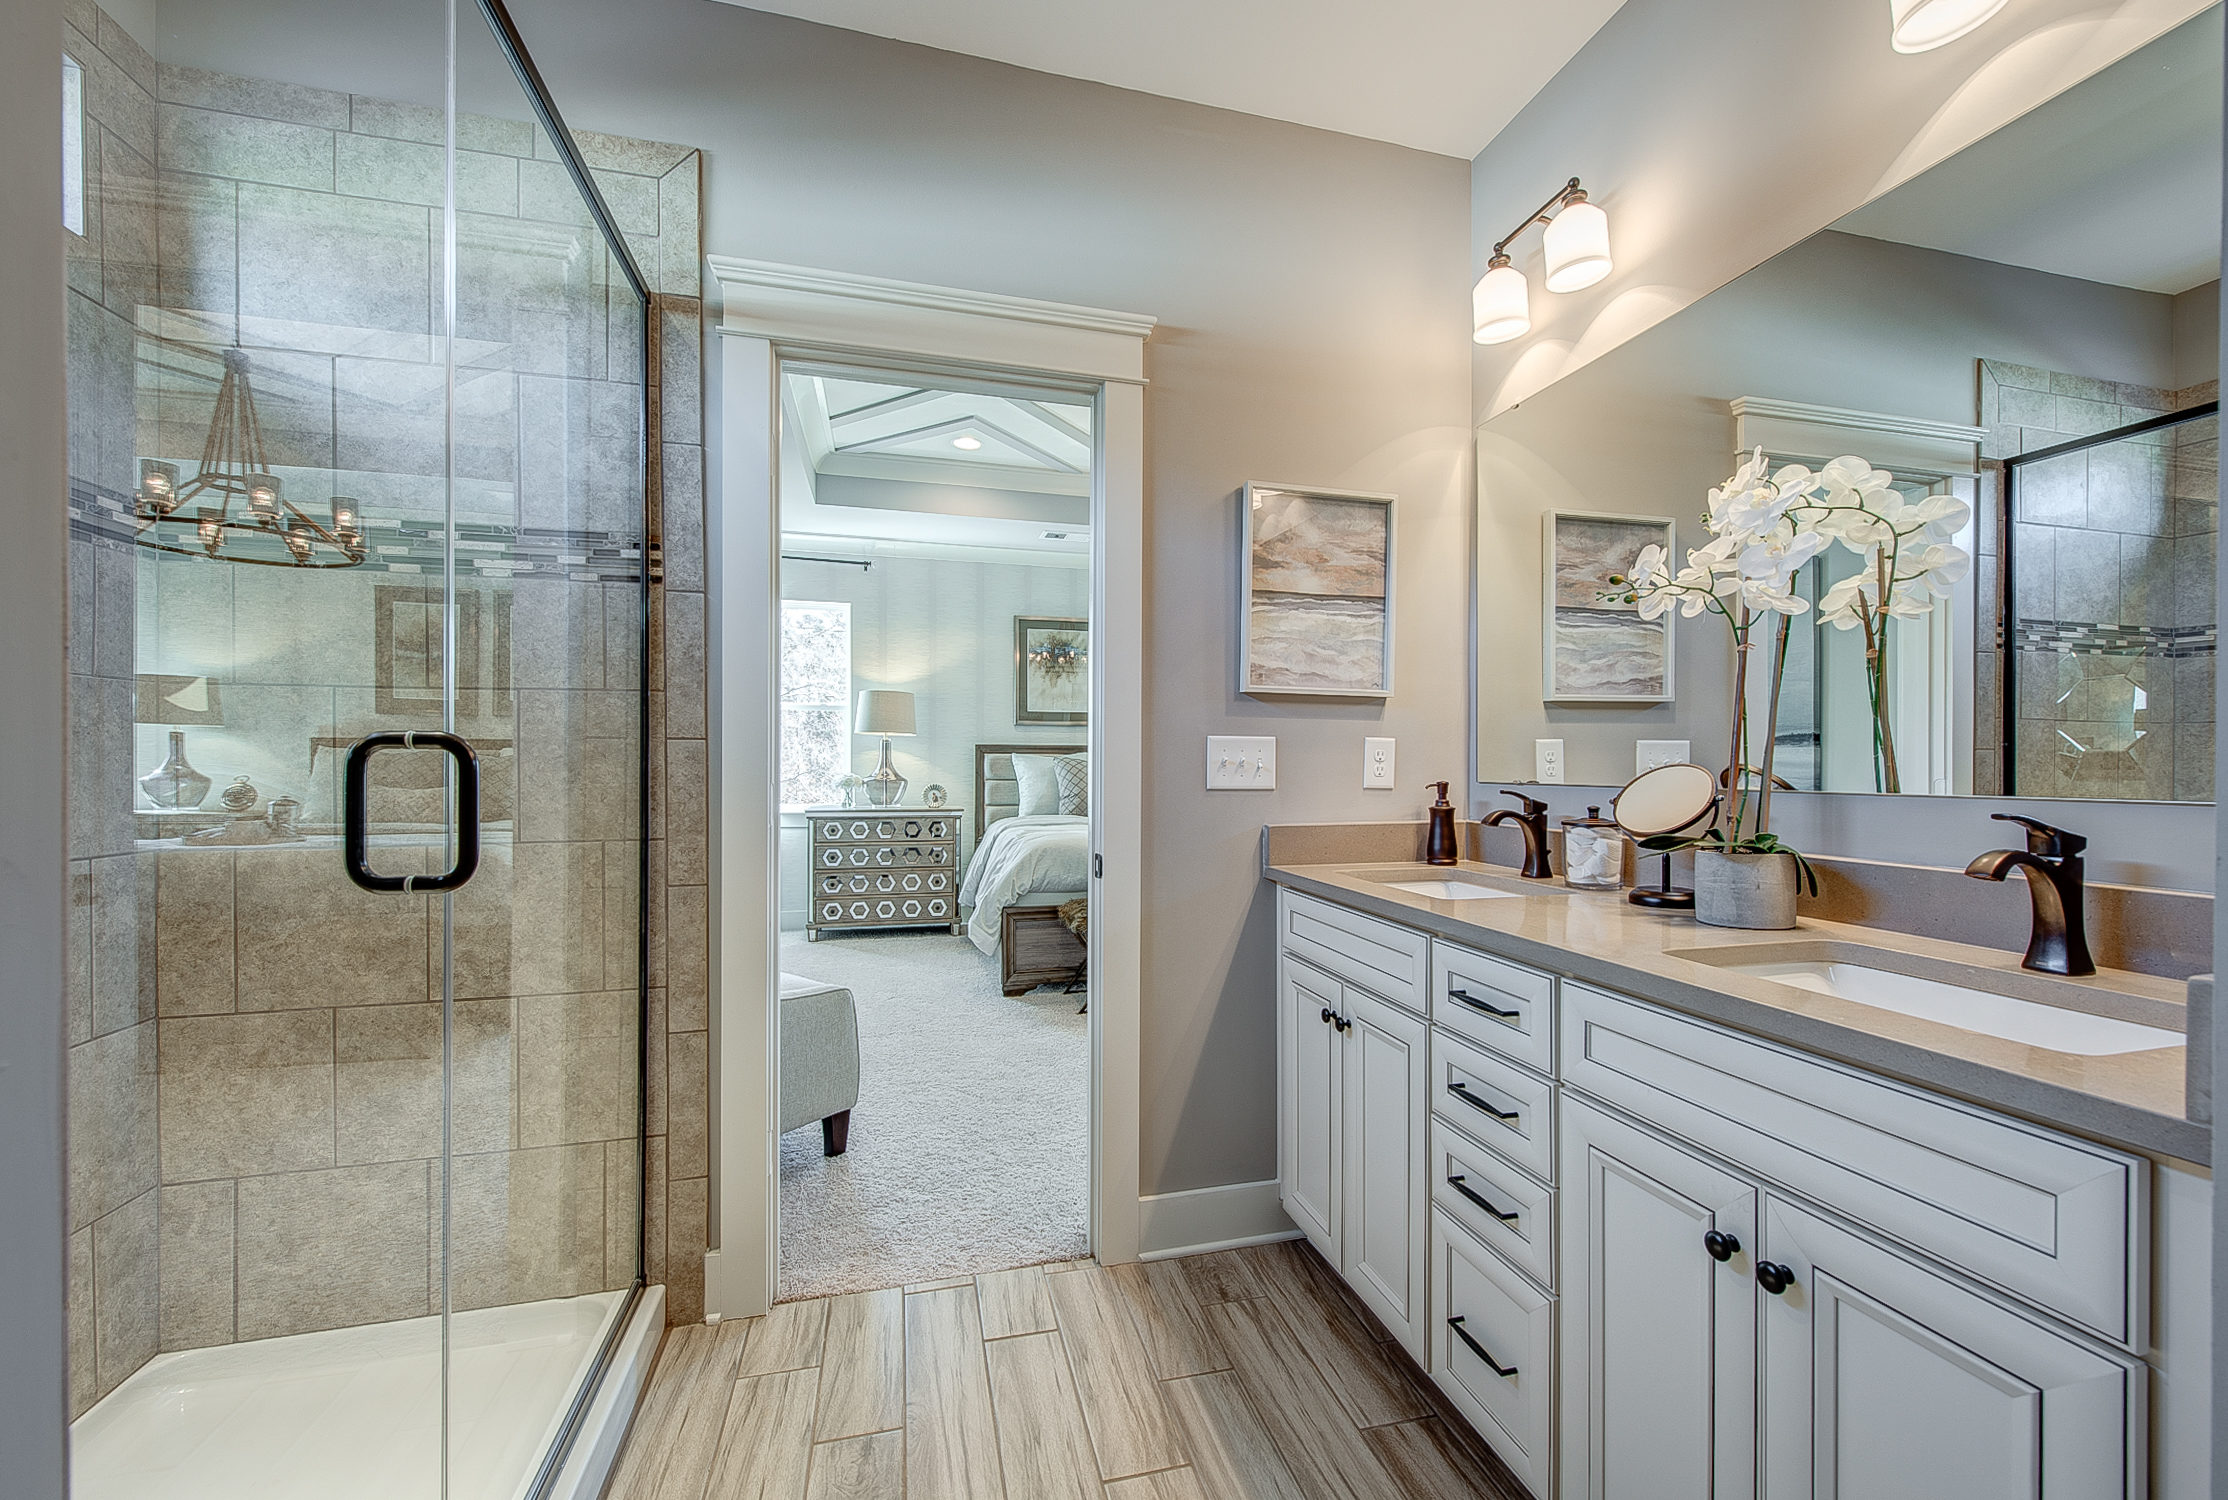 104-bushney-loop-mooresville-print-028-19-owners-bathroom-2228x1500-300dpi_33628711141_o.jpg